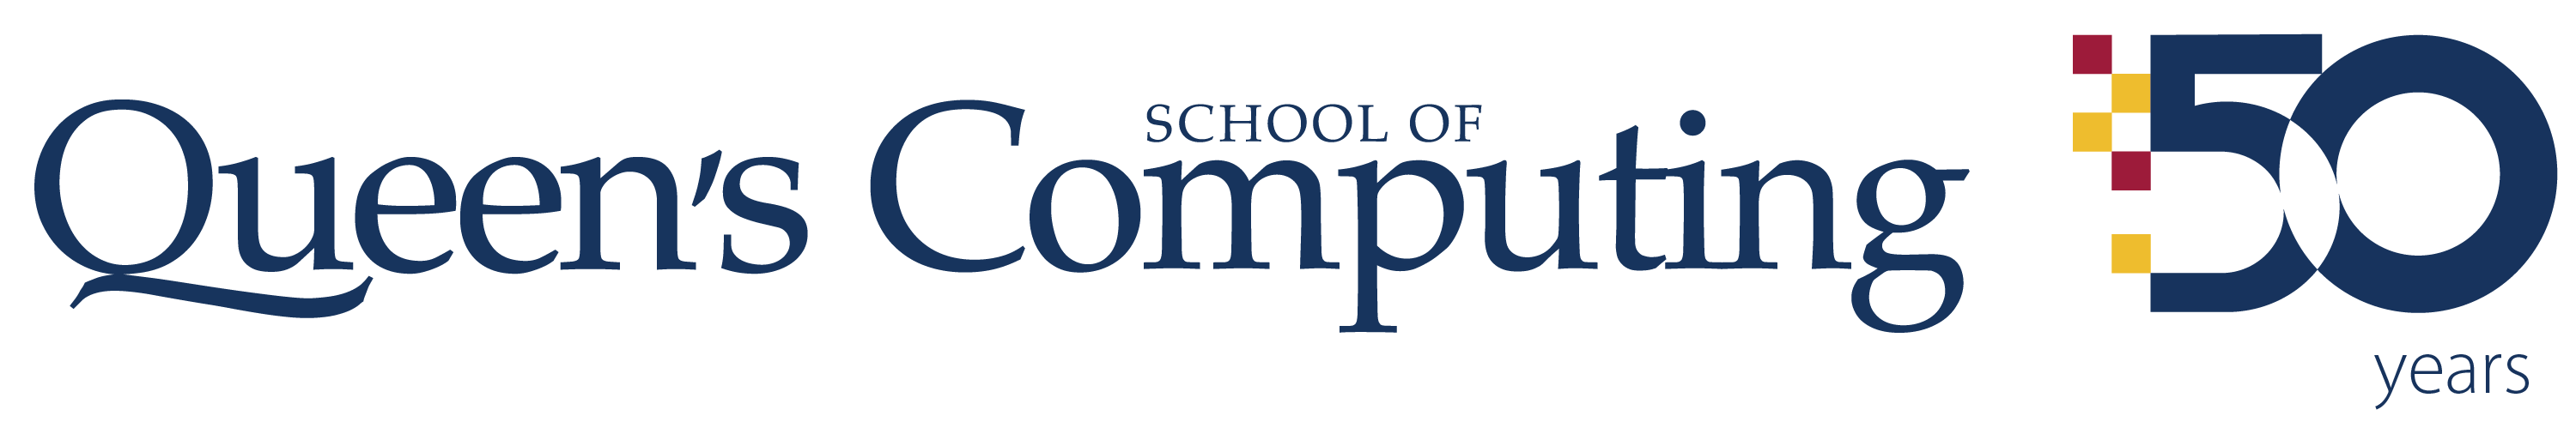 Queen's School of Computing 50th emblem for light backgrounds